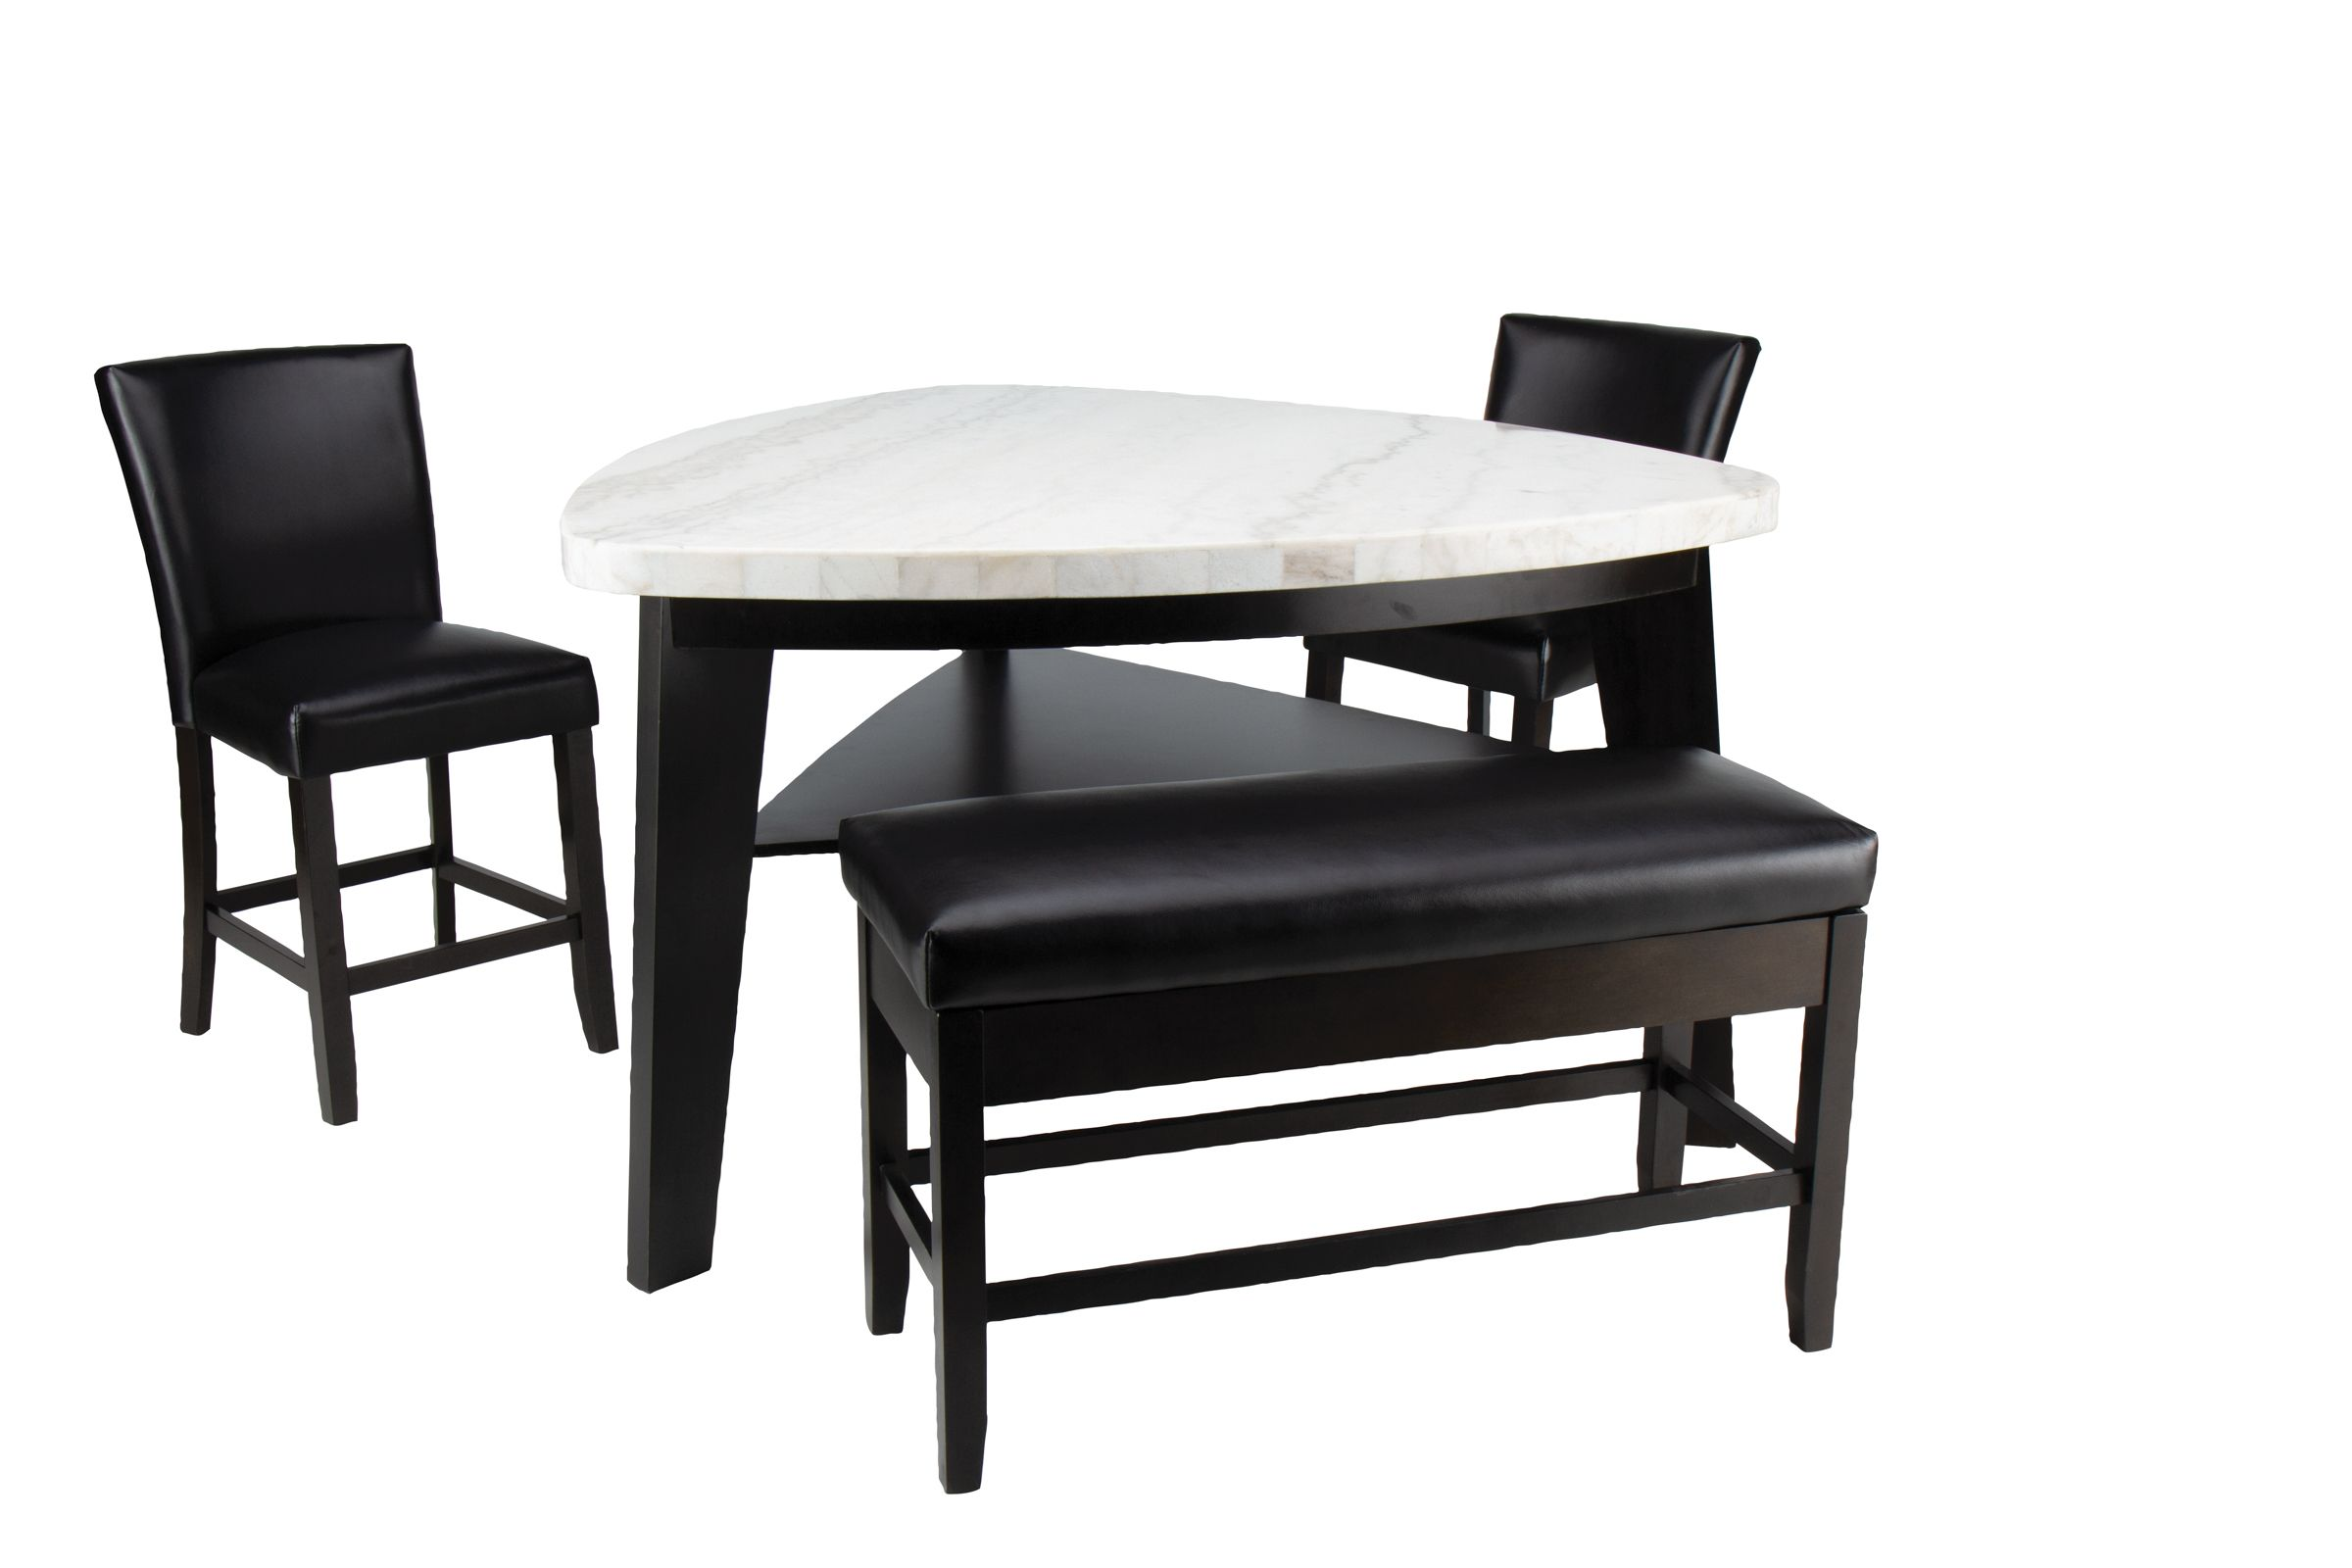 Carrara Marble Counter Height Dining Table 2 Counter Chairs Storage Bench